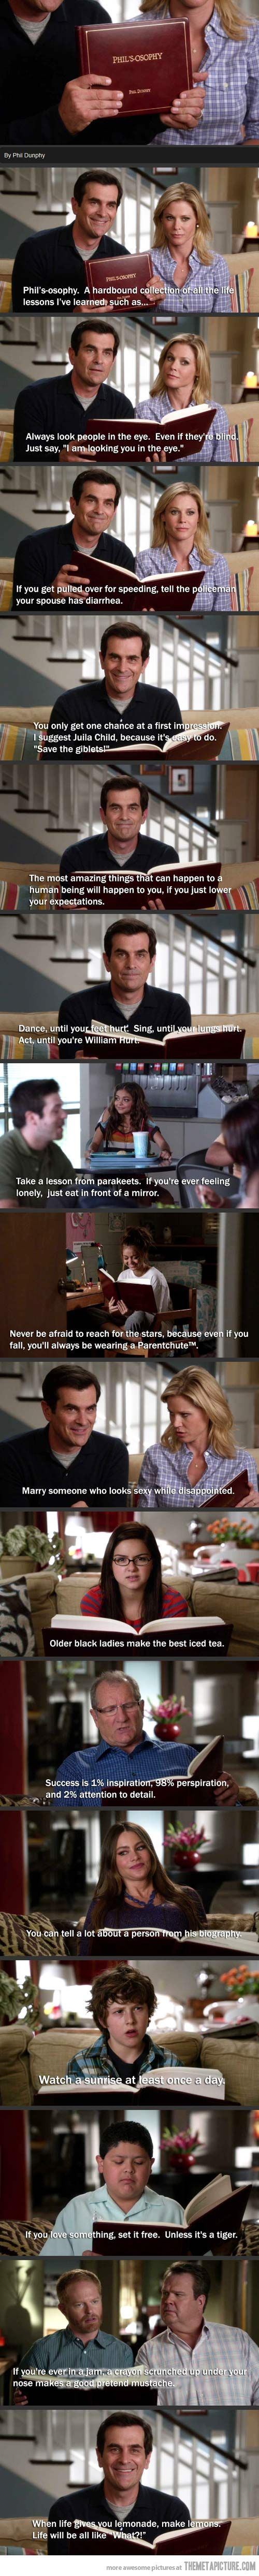 Phil's-osophy! One of my favorite Modern Family episodes by far! hahaha, I love Phil